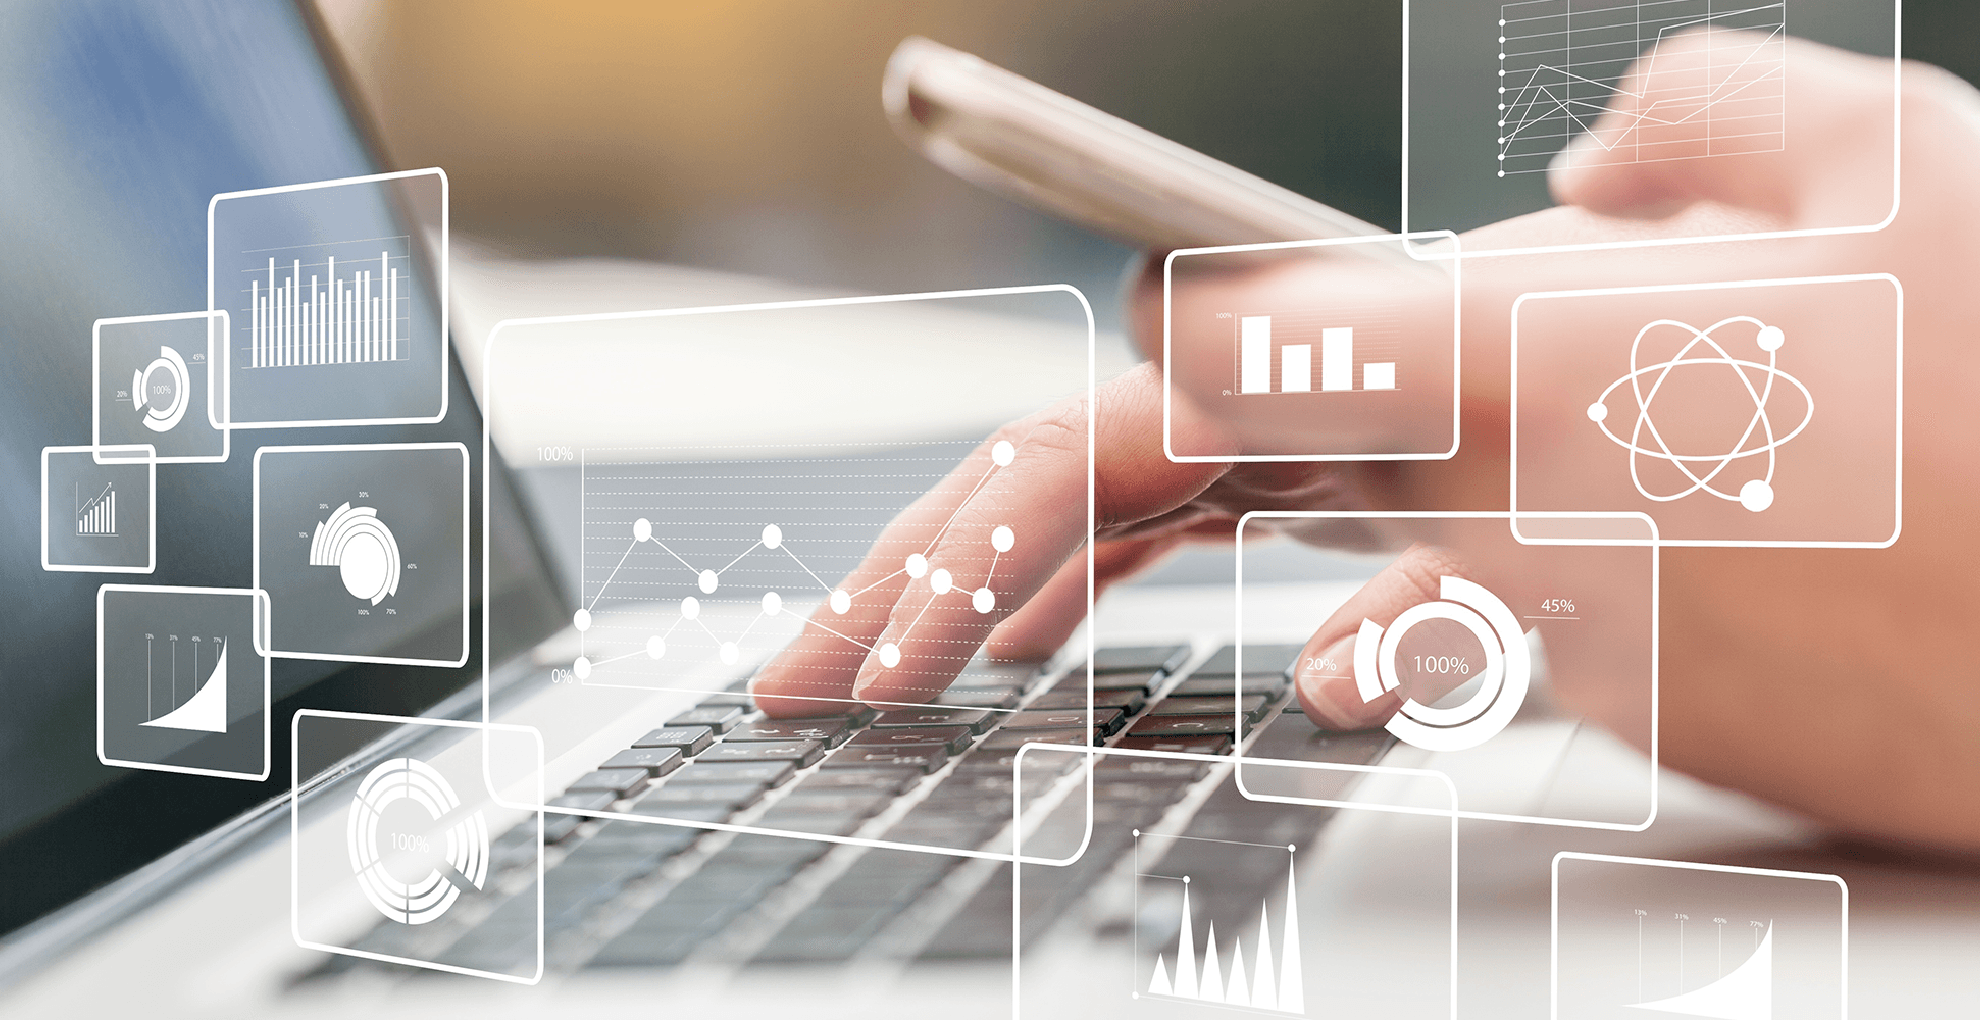 Analytics are Key to Measuring Success of Industry 4.0 Public Relations Campaigns